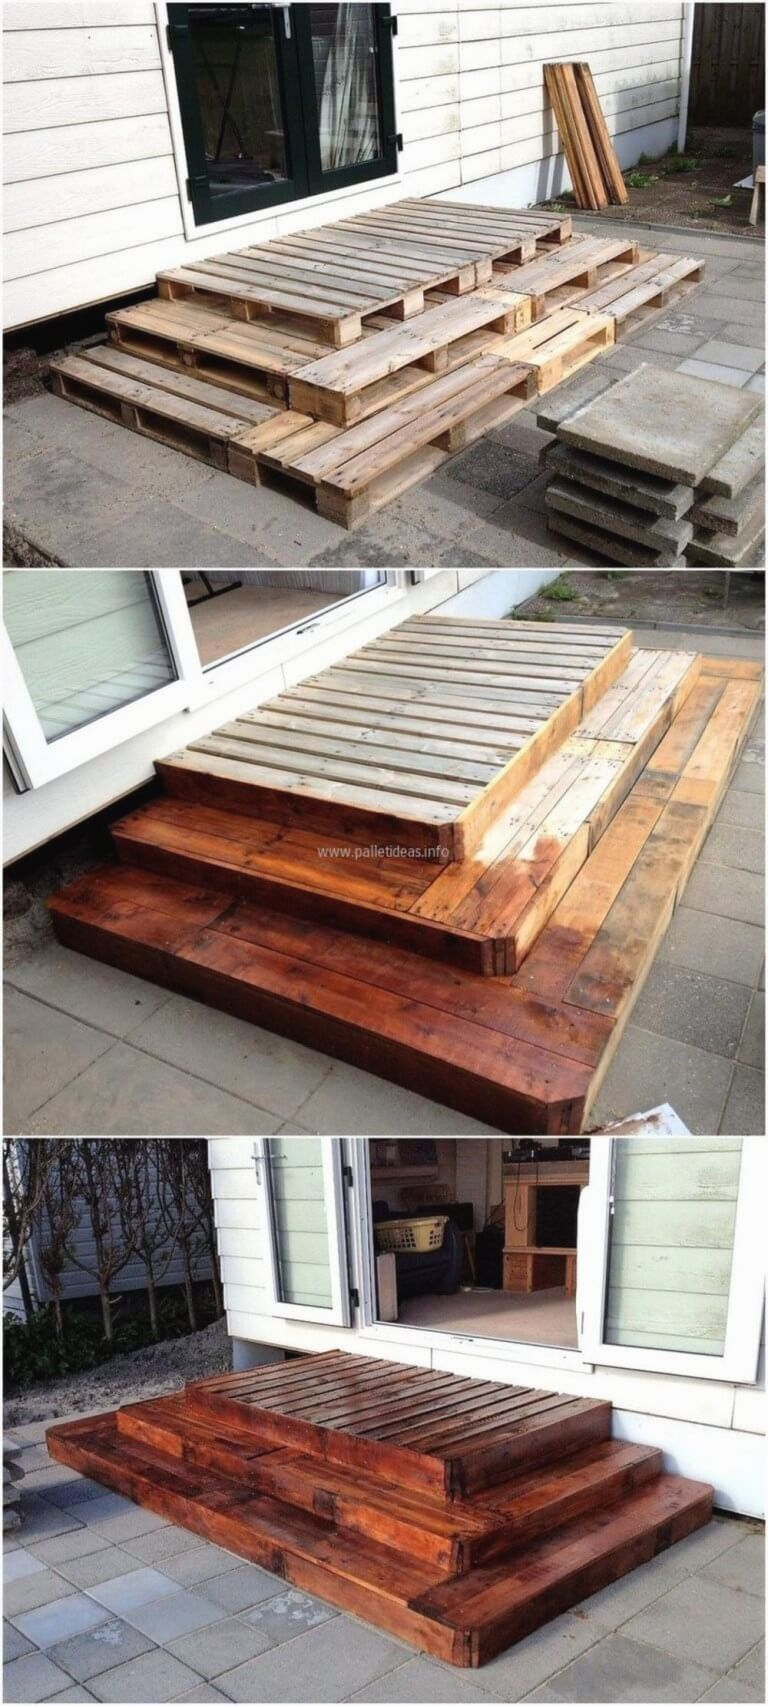 wood patio ideas on a budget. 36 Planter Box Ideas For Small Backyards And Patios Wood Patio On A Budget